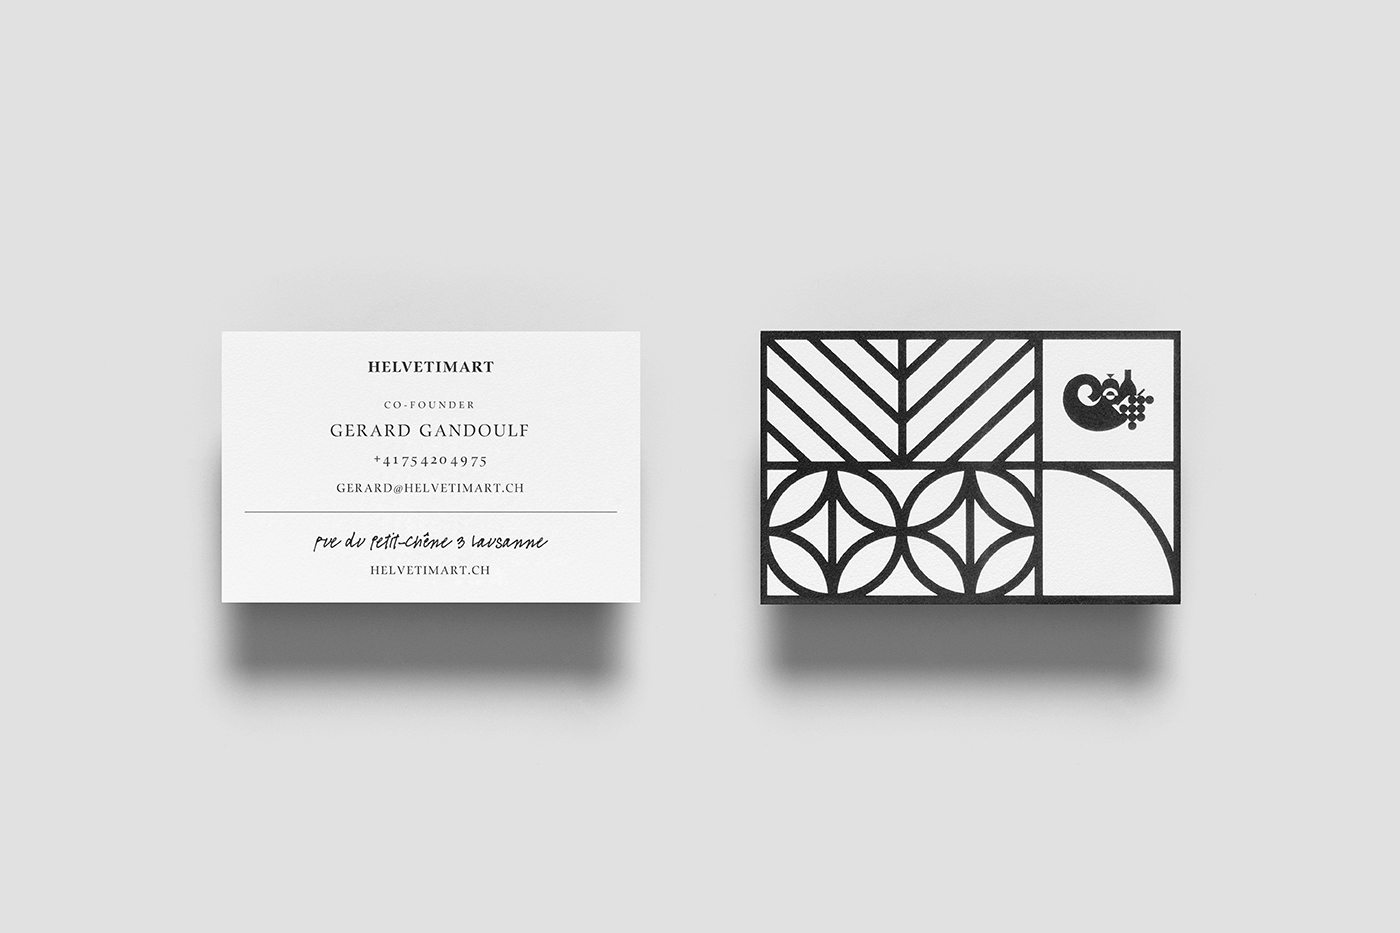 The Best Creative Business Cards 2017 – Helvetimart by Anagrama, Mexico